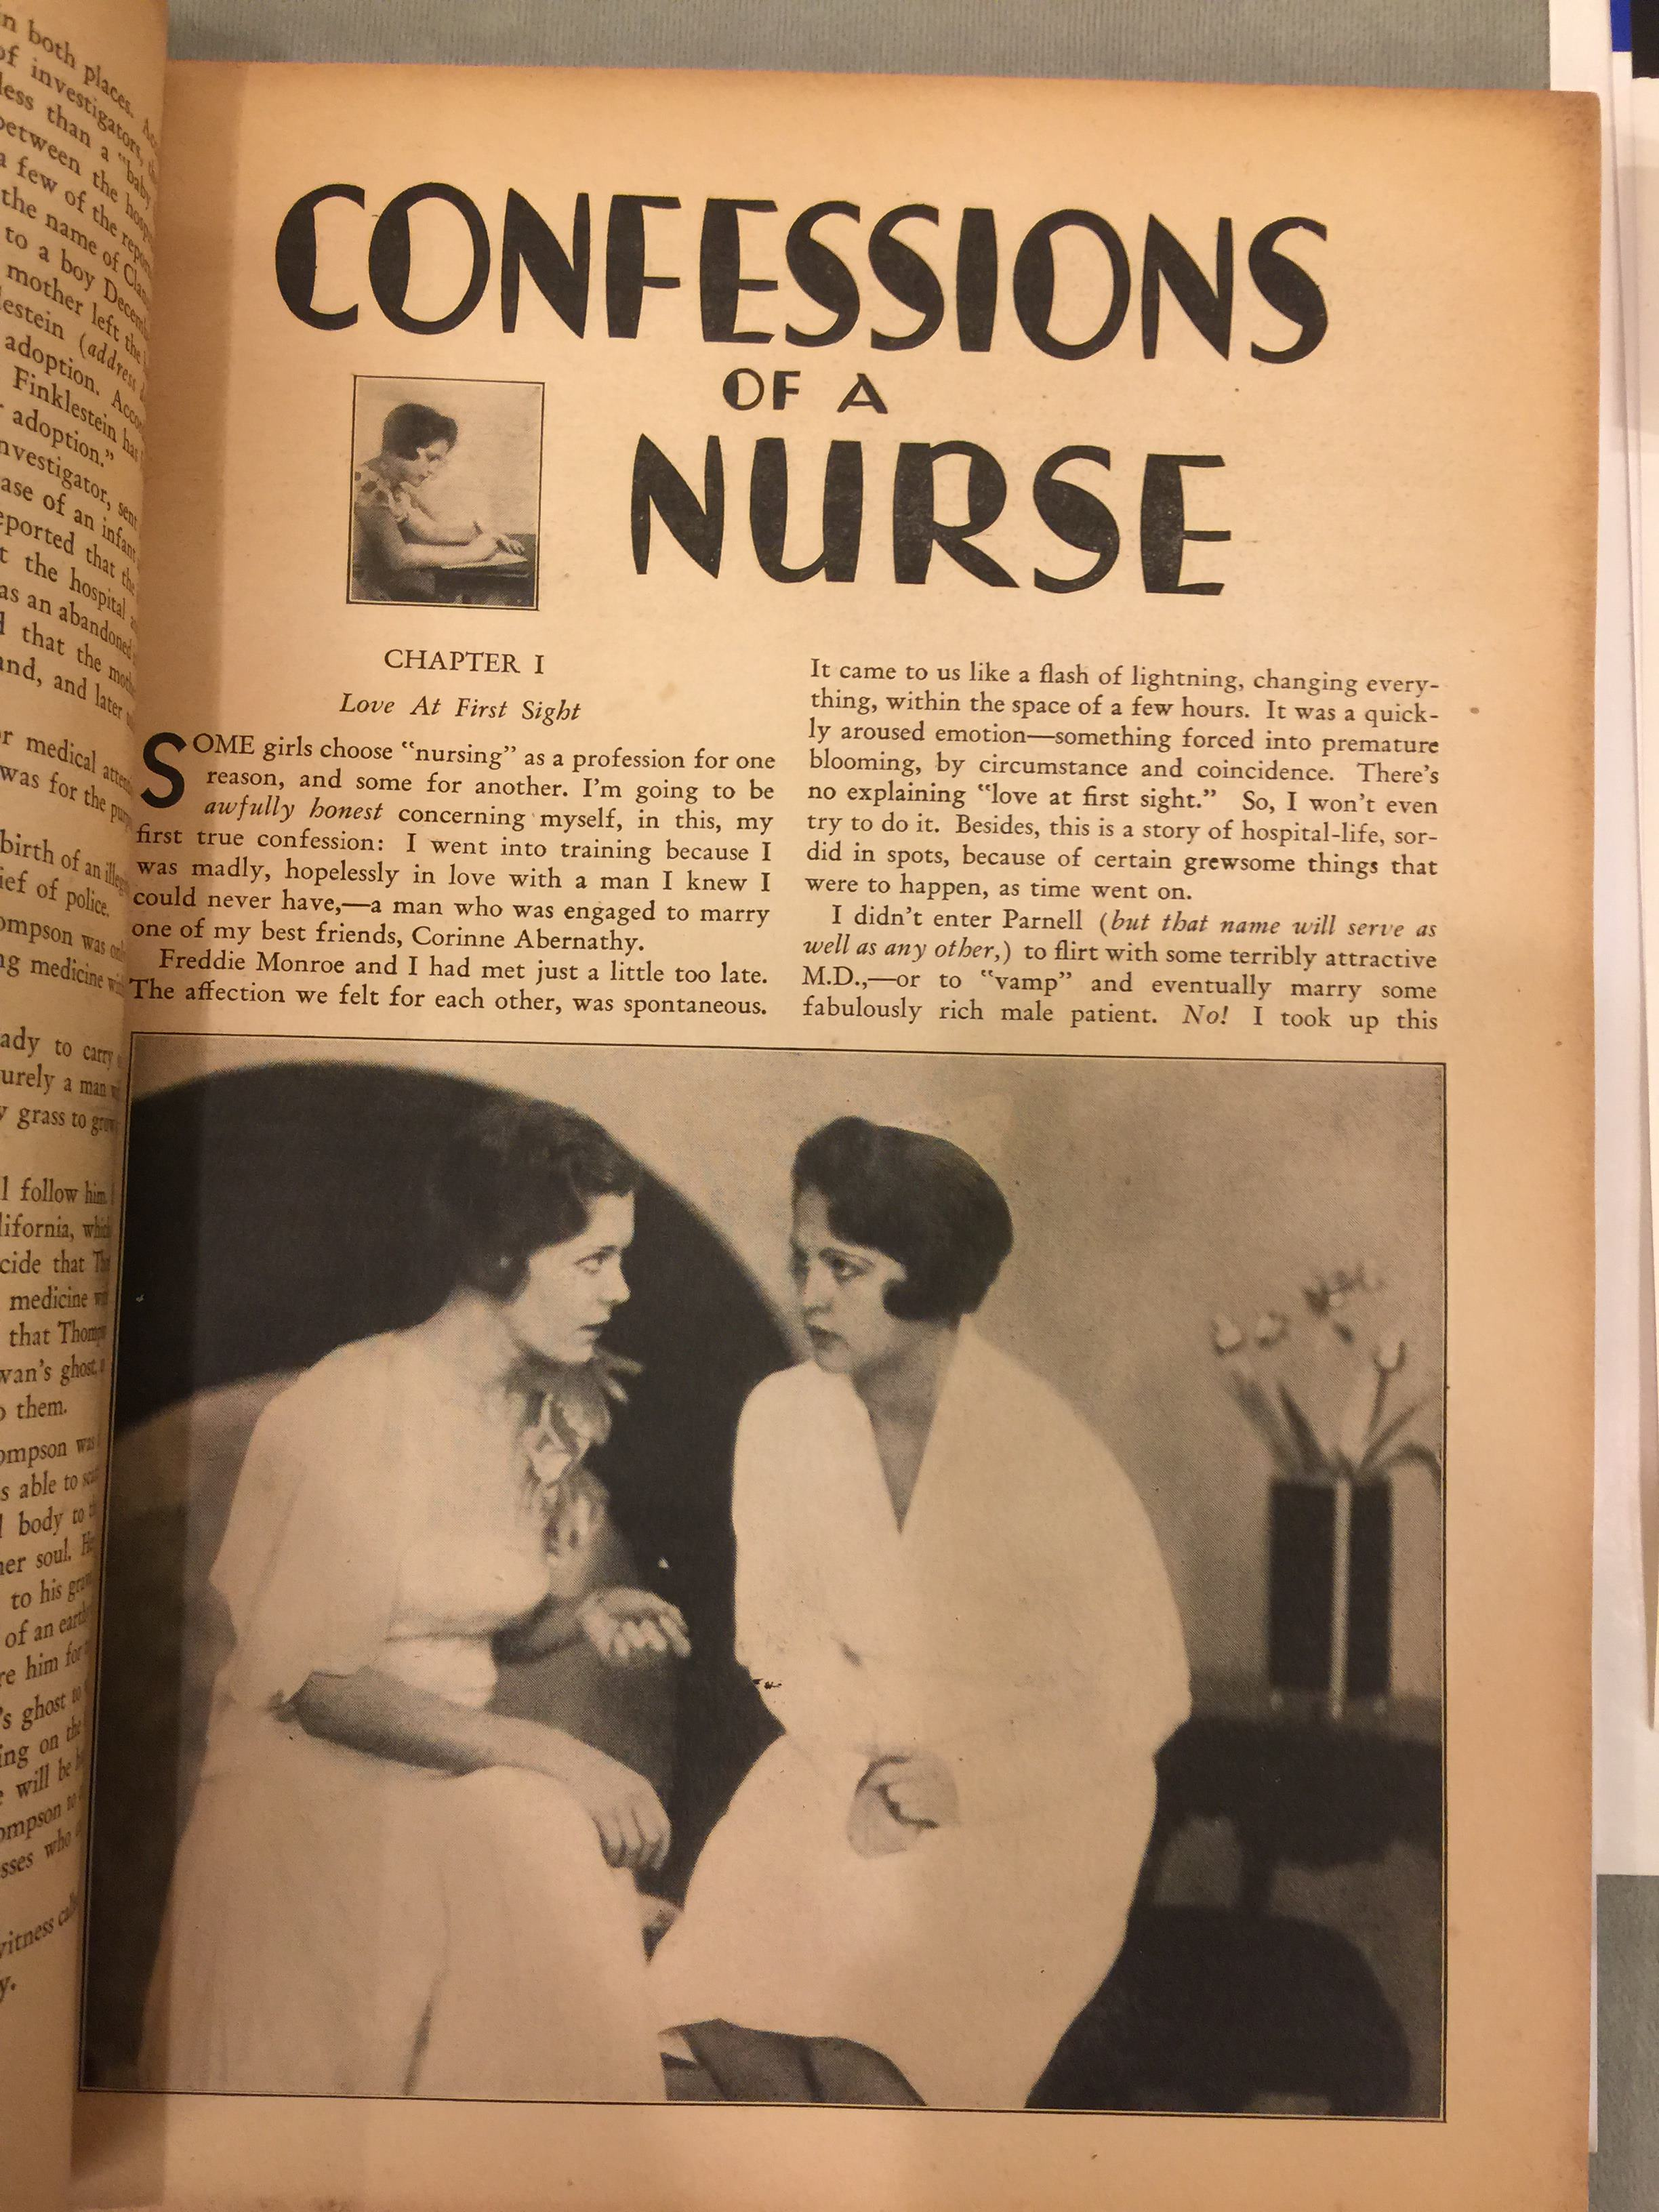 Confessions of a nurse, from Medical Horrors #1